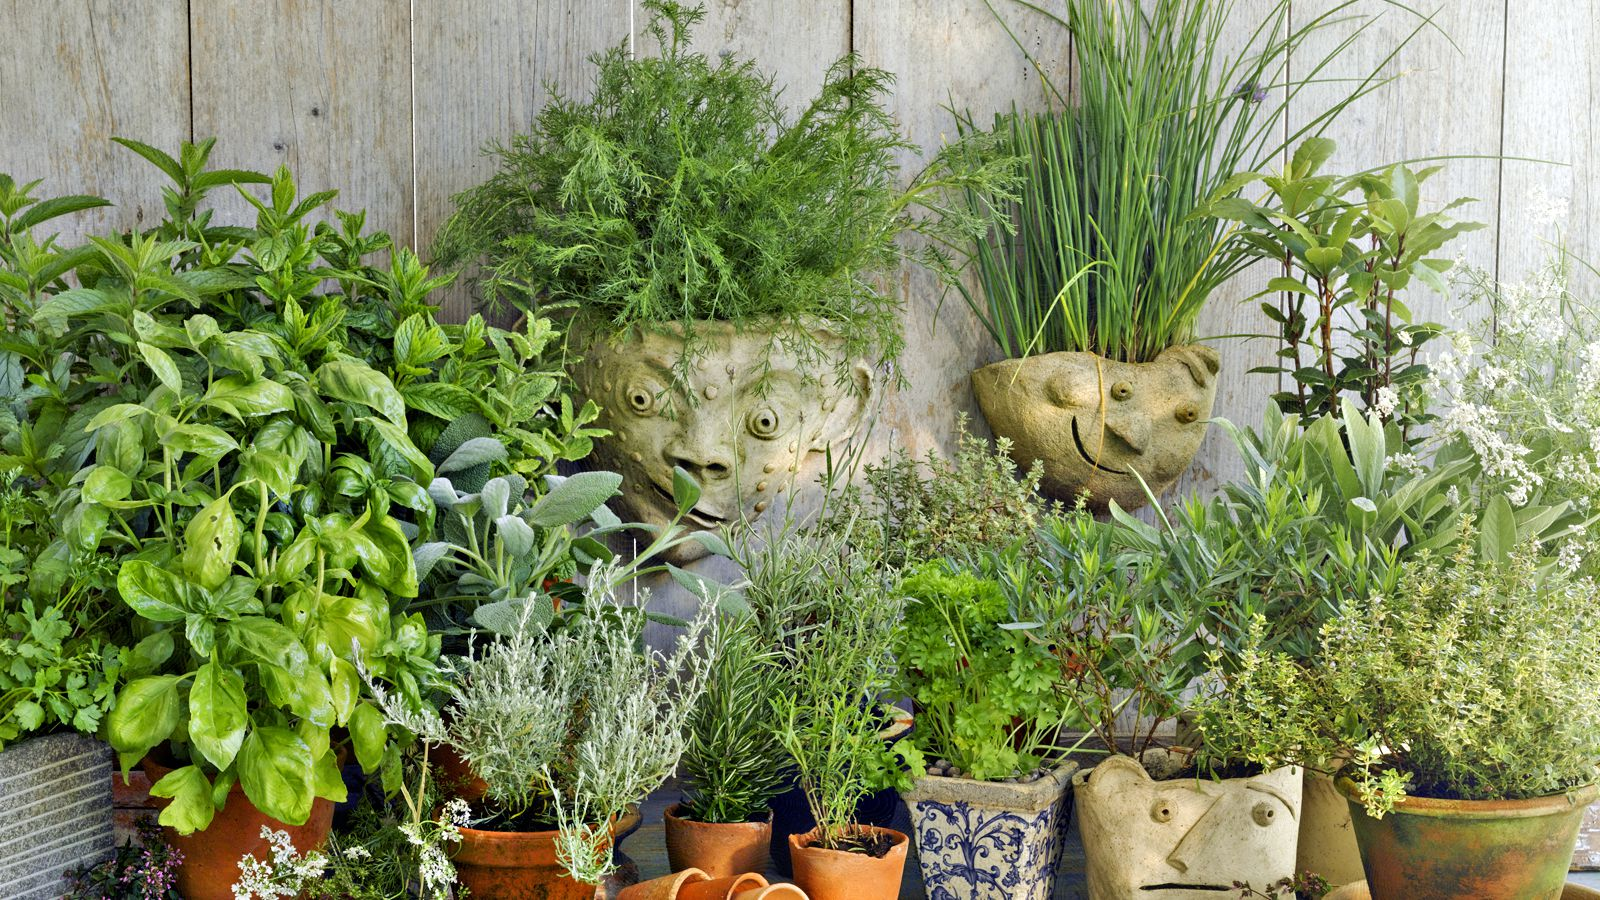 What Can You Sell From Your Herb Garden